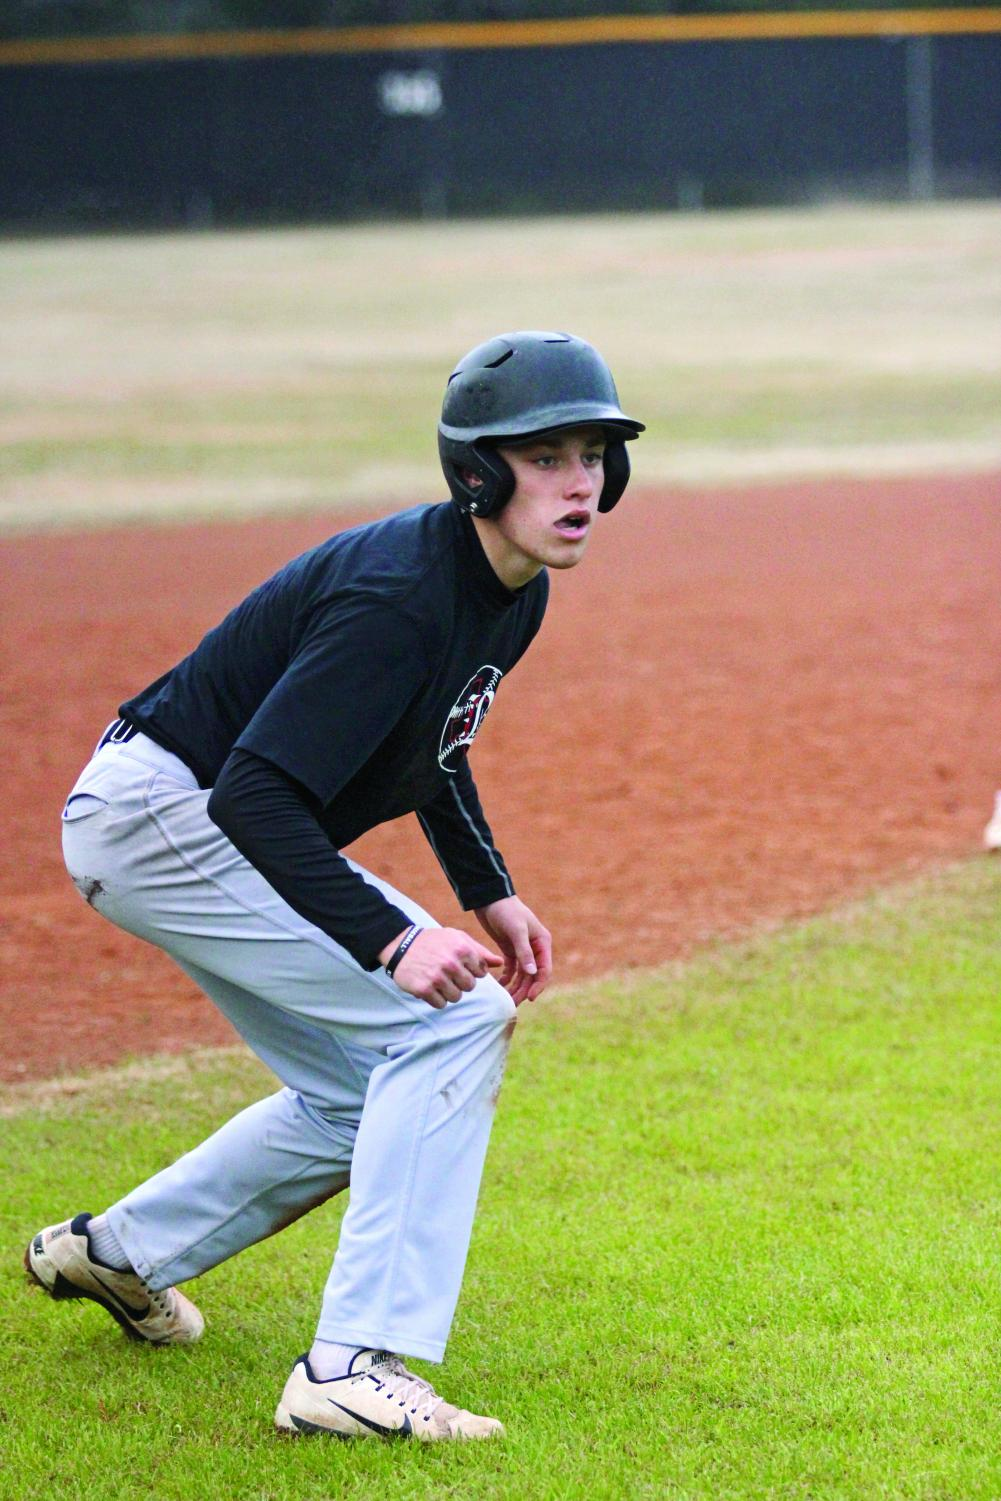 GETTING TO  THIRD BASE: Senior Seth Werchan prepares to sprint to home base. Werchan will attend the University of Pennsylvania to play baseball.